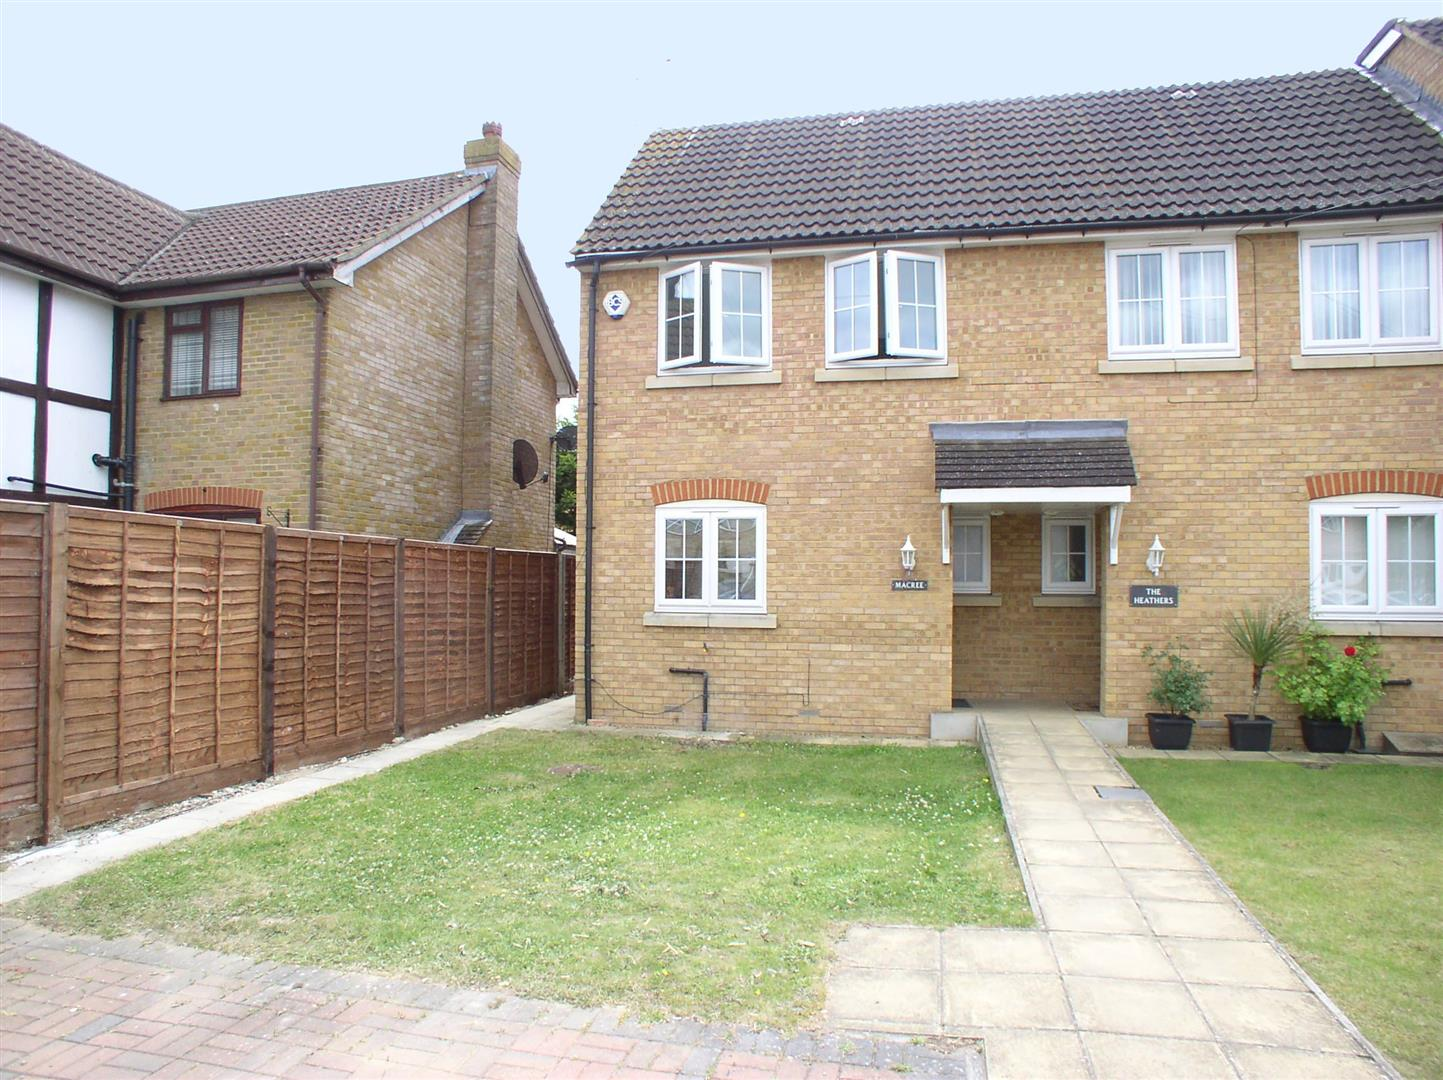 3 Bedrooms House for sale in Homefield Road, Walton-On-Thames